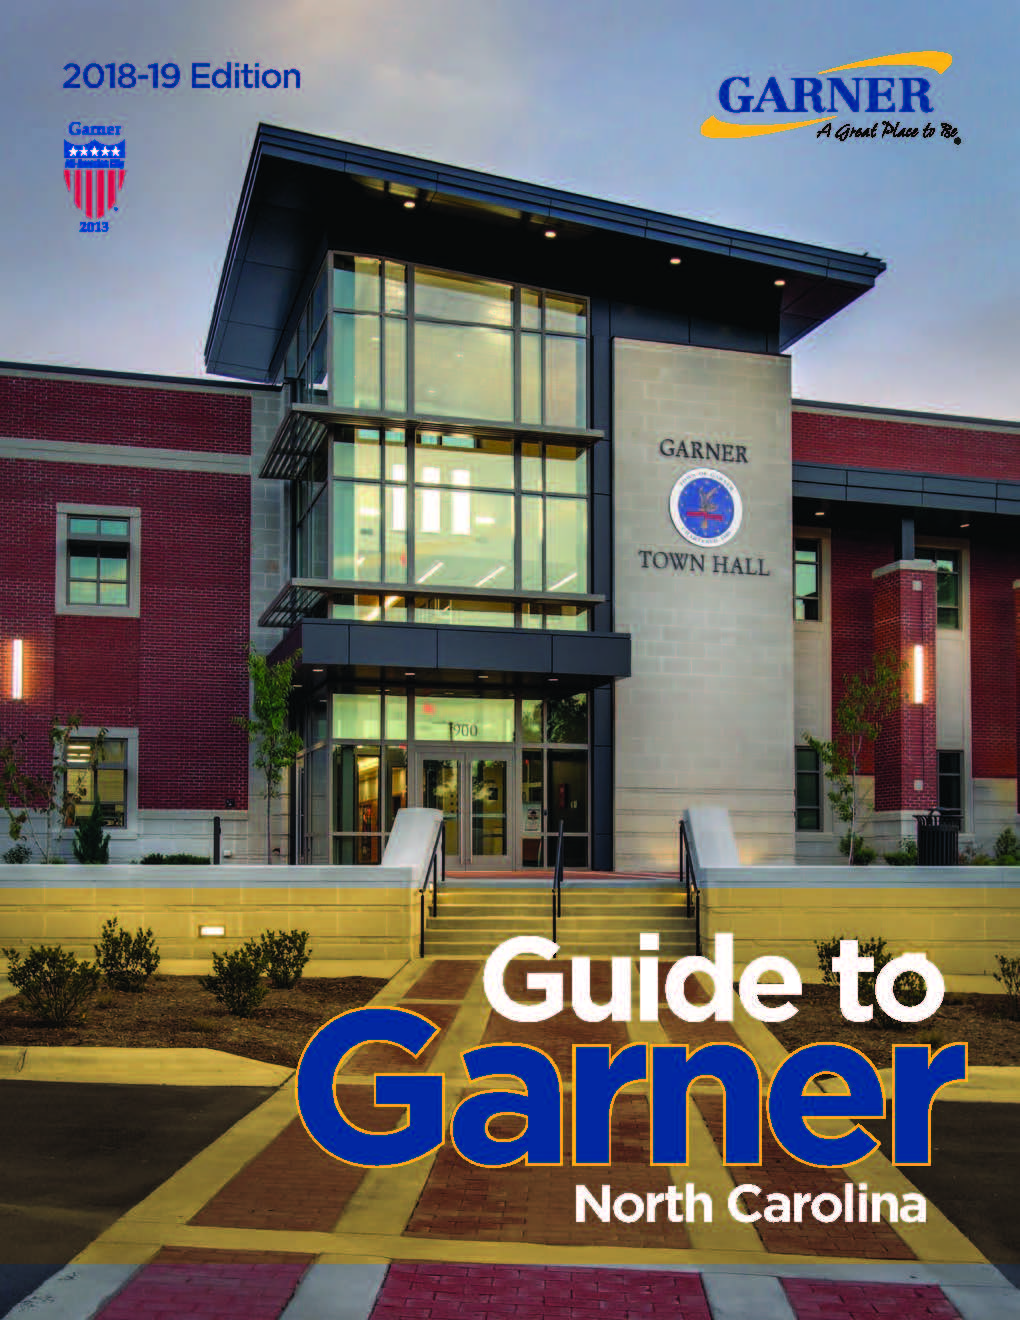 GuidetoGarner2018 cover